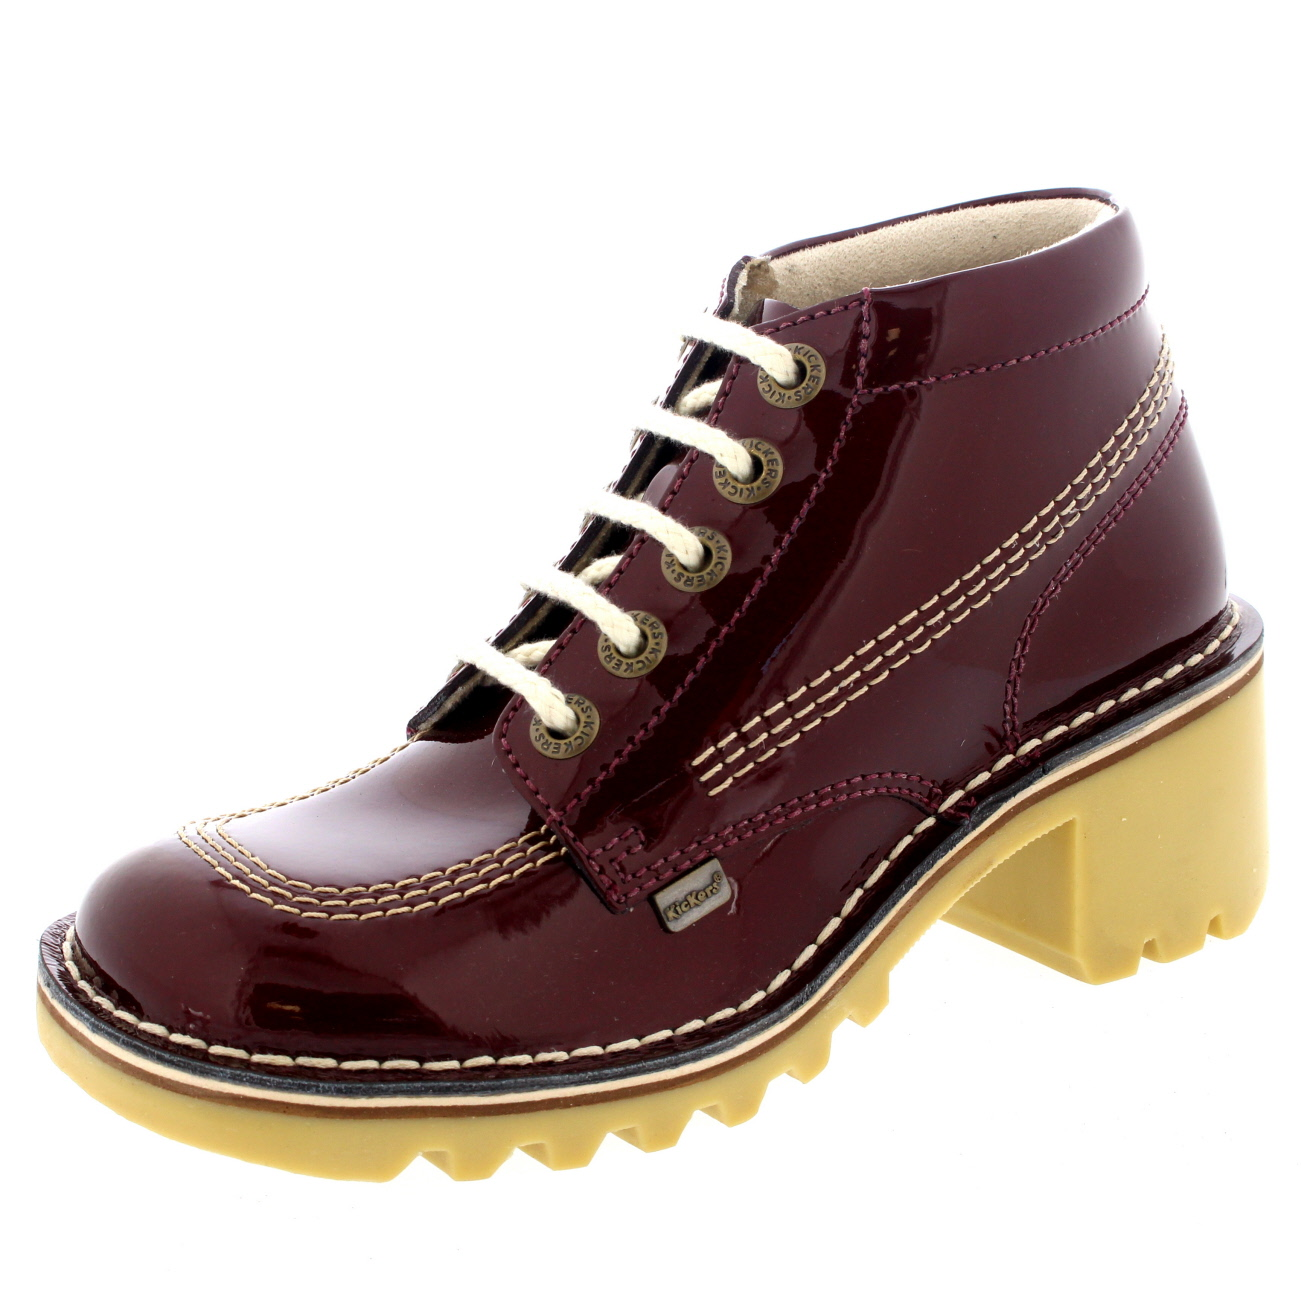 Beautiful Details About KICKERS GIRLS WOMENS BACK TO SCHOOL BROGUE BOW SHOES